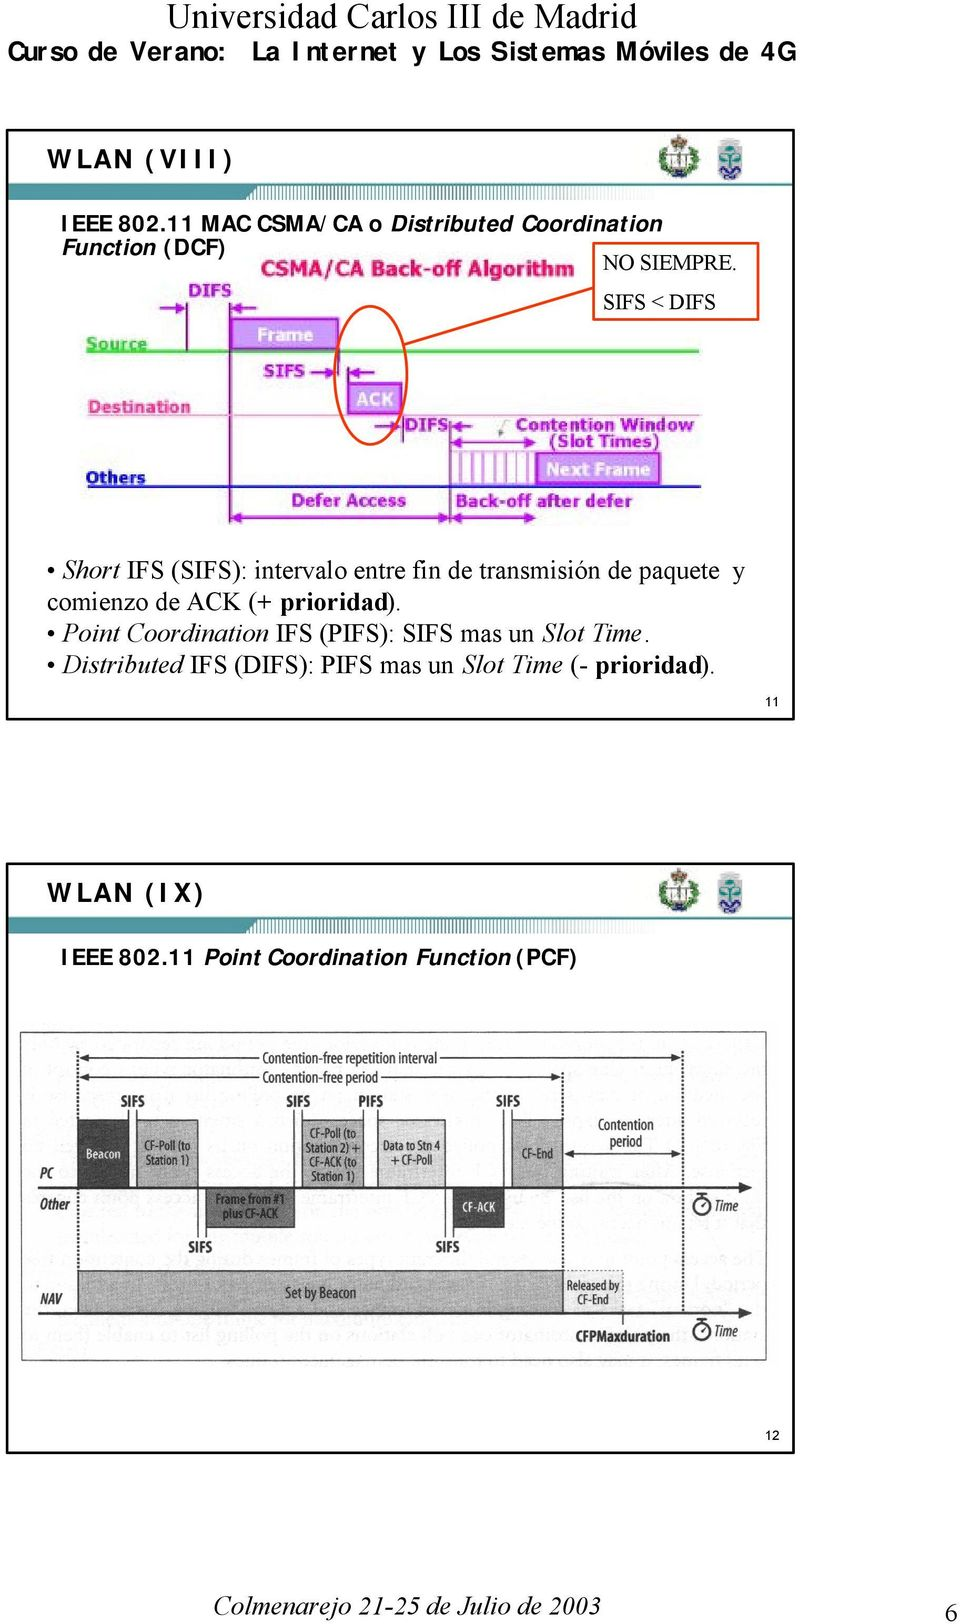 (+ prioridad). Point Coordination IFS (PIFS): SIFS mas un Slot Time.